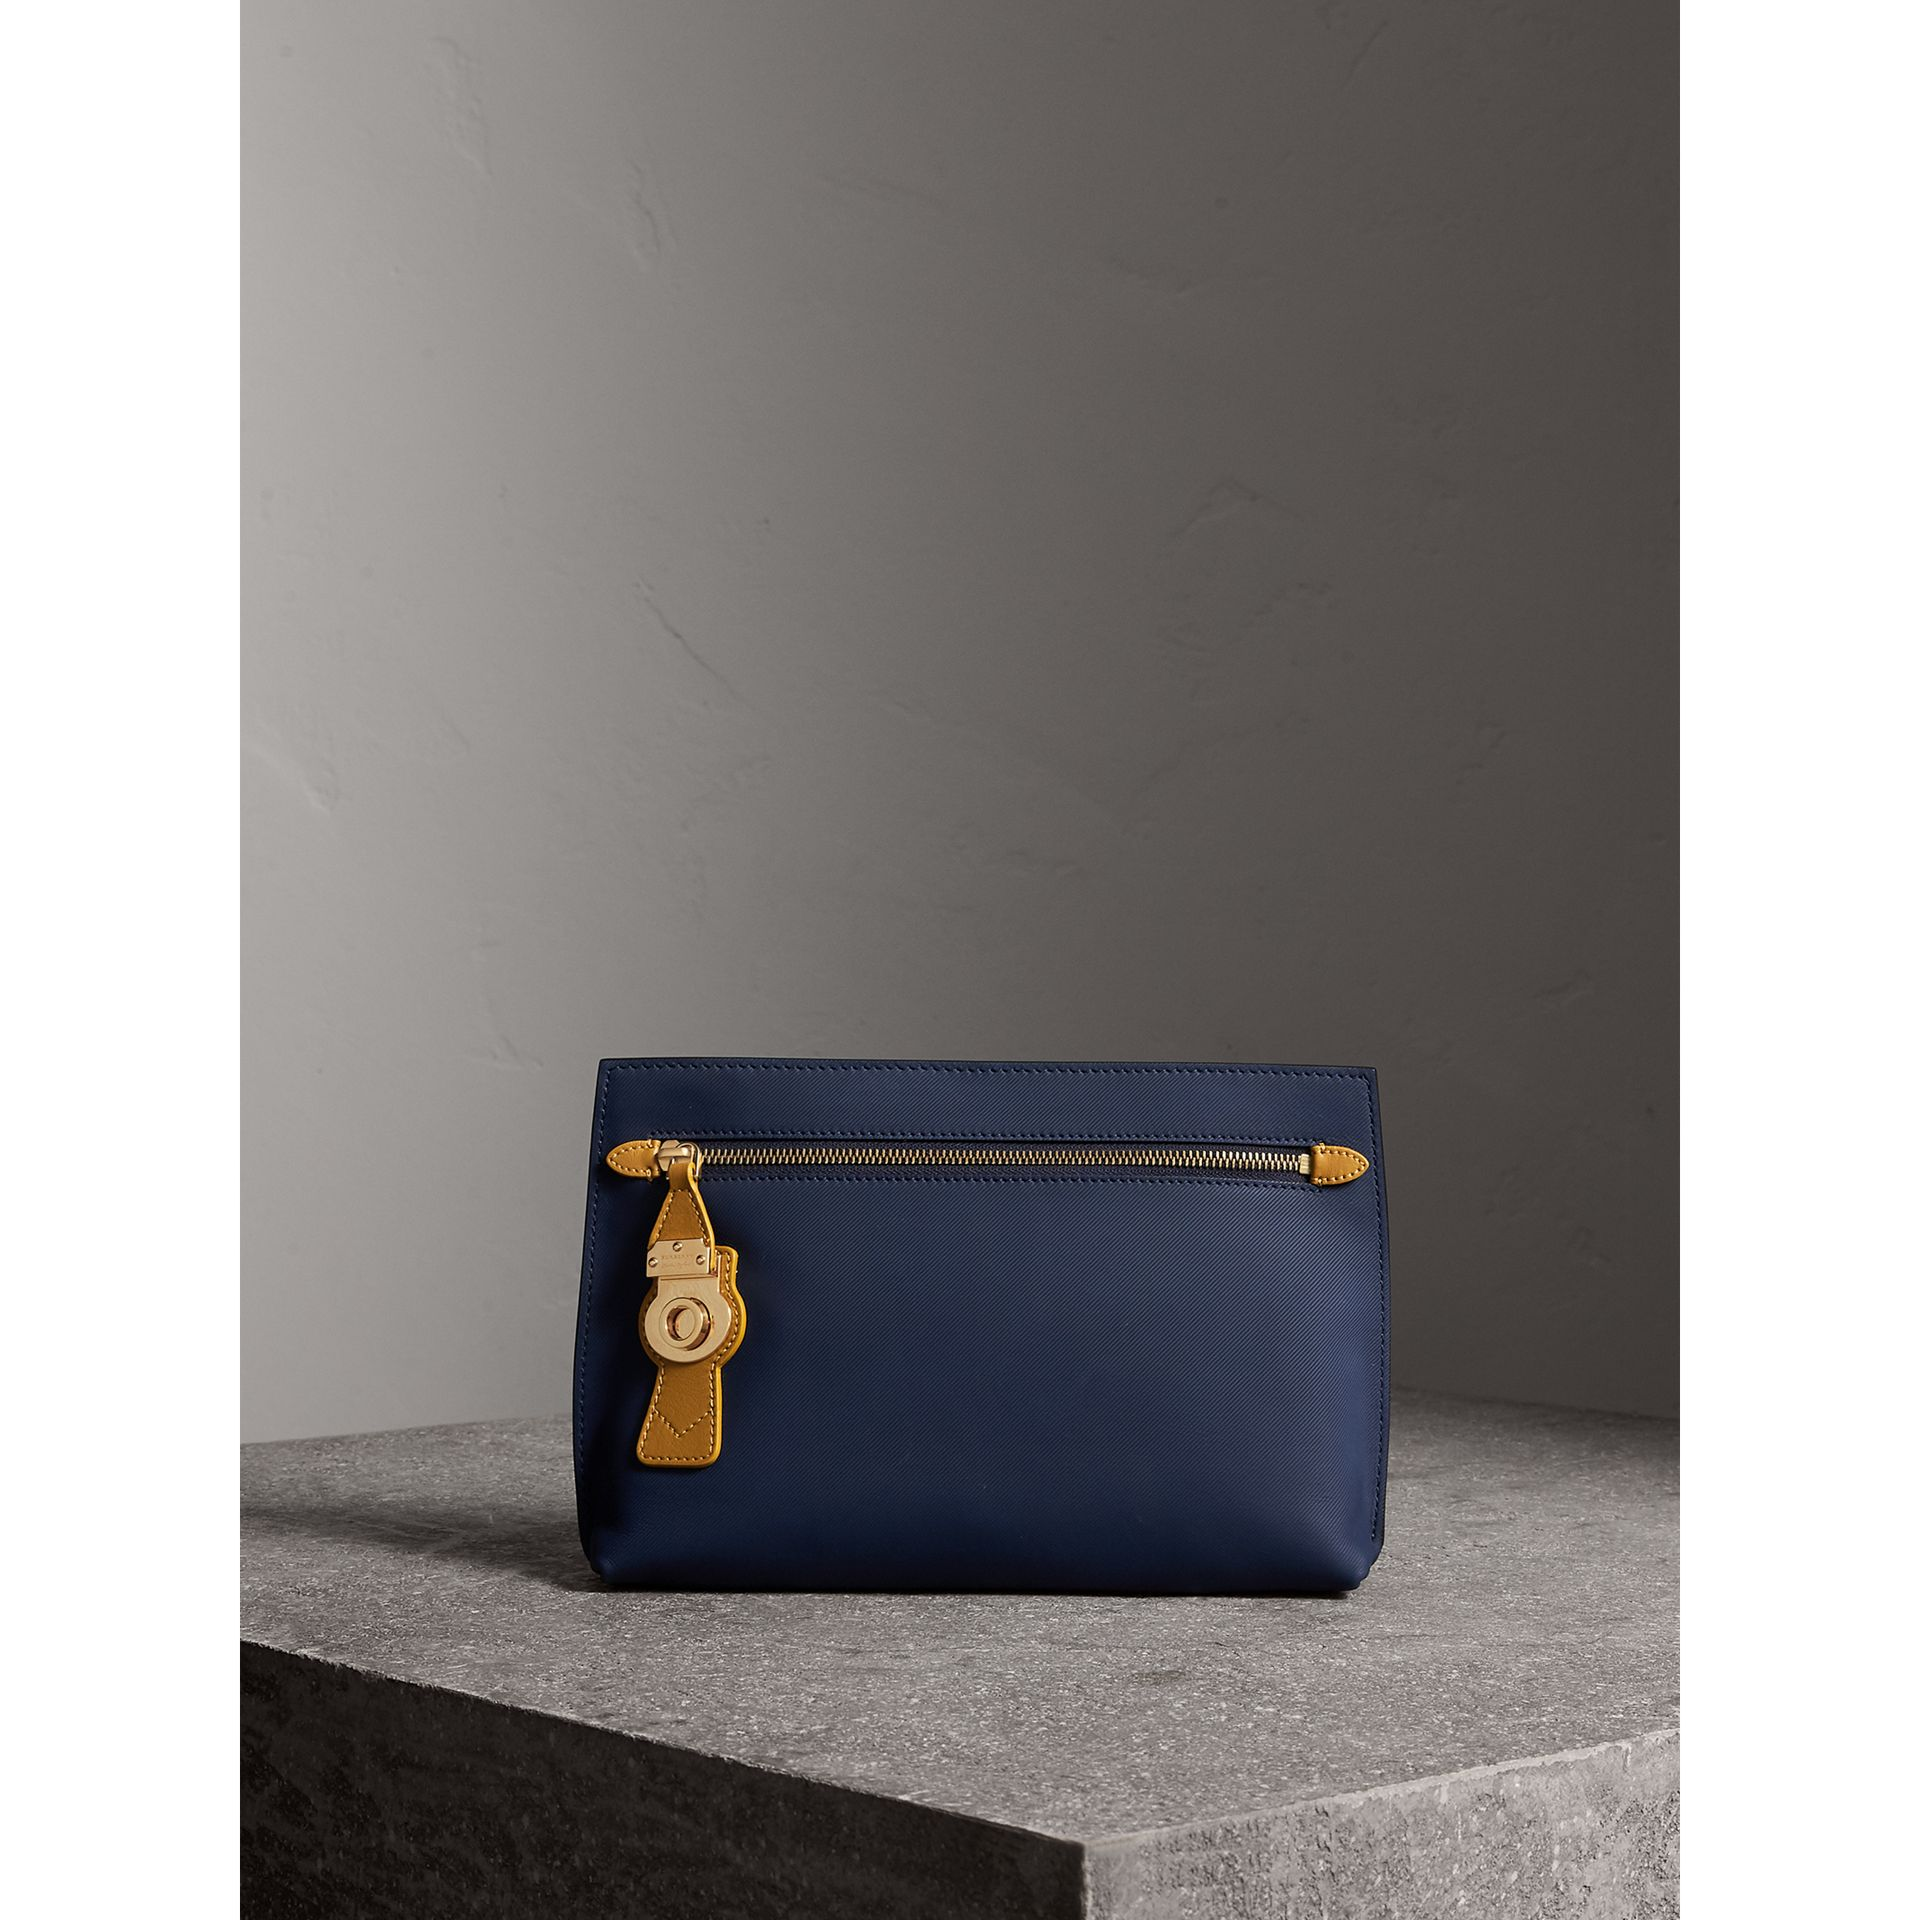 Two-tone Trench Leather Wristlet Pouch in Ink Blue/ochre Yellow - Women | Burberry - gallery image 1